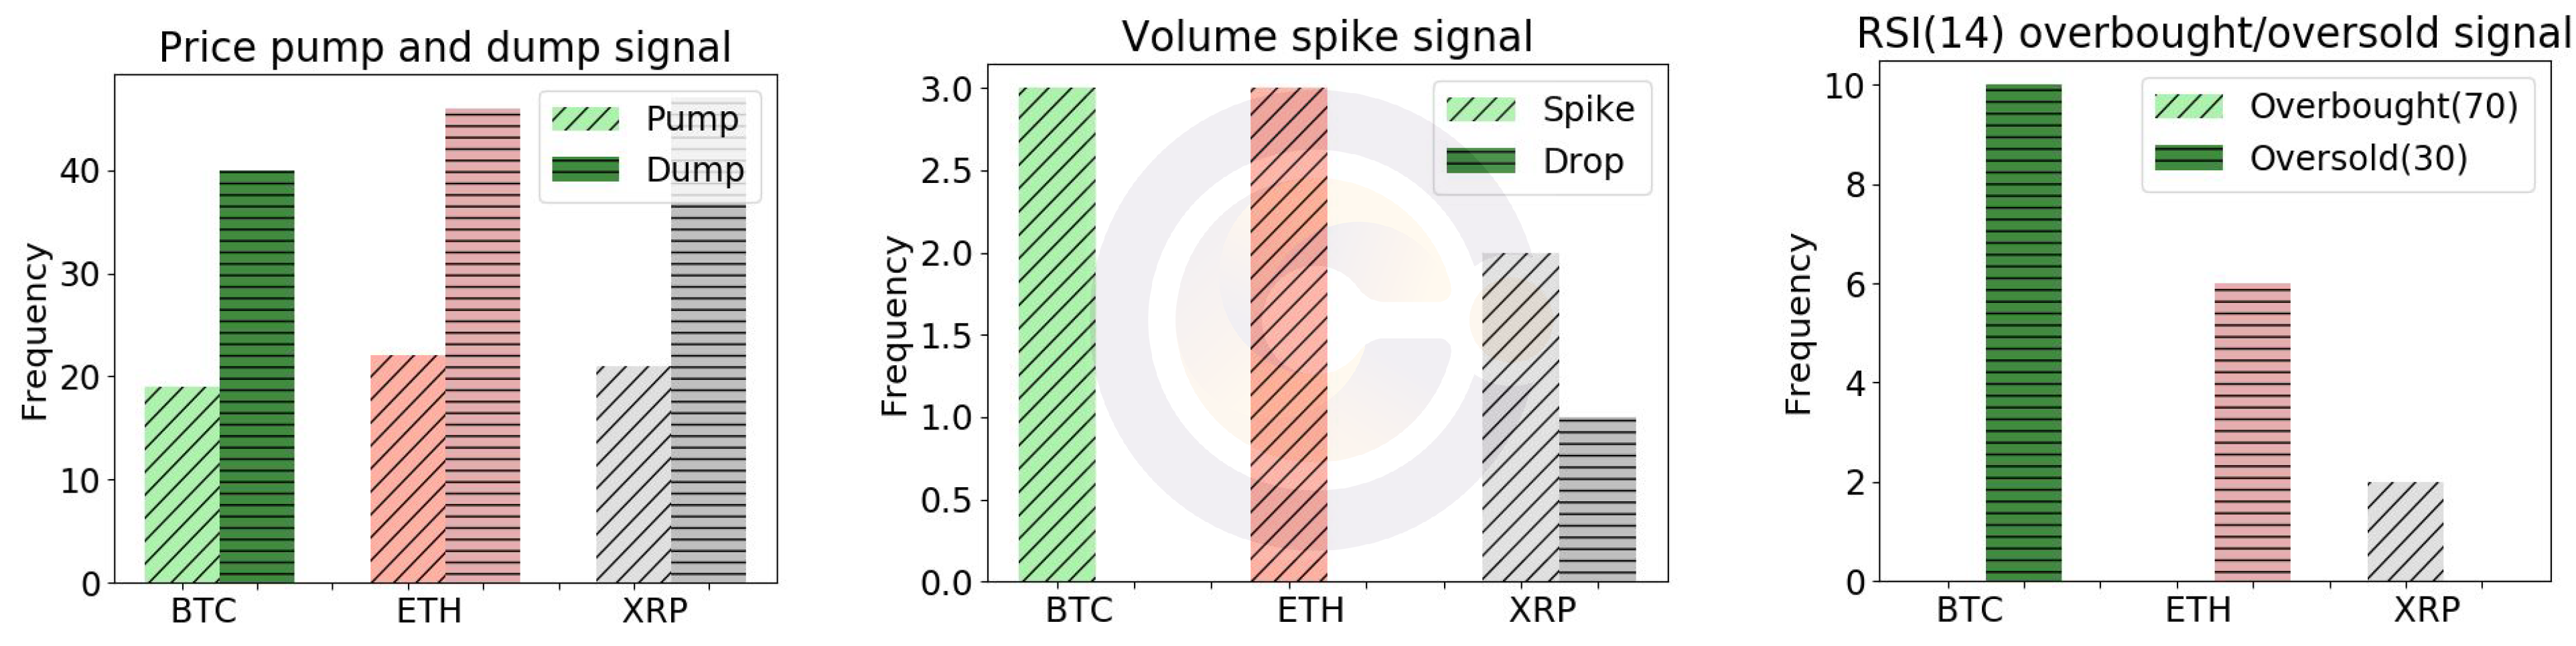 Blockchain - Price pump and dump signals, volume spike signals, and RSI (14) signals at Kraken for BTC/USD, ETH/USD and XRP/USD between June 1 to June 30, 2019.